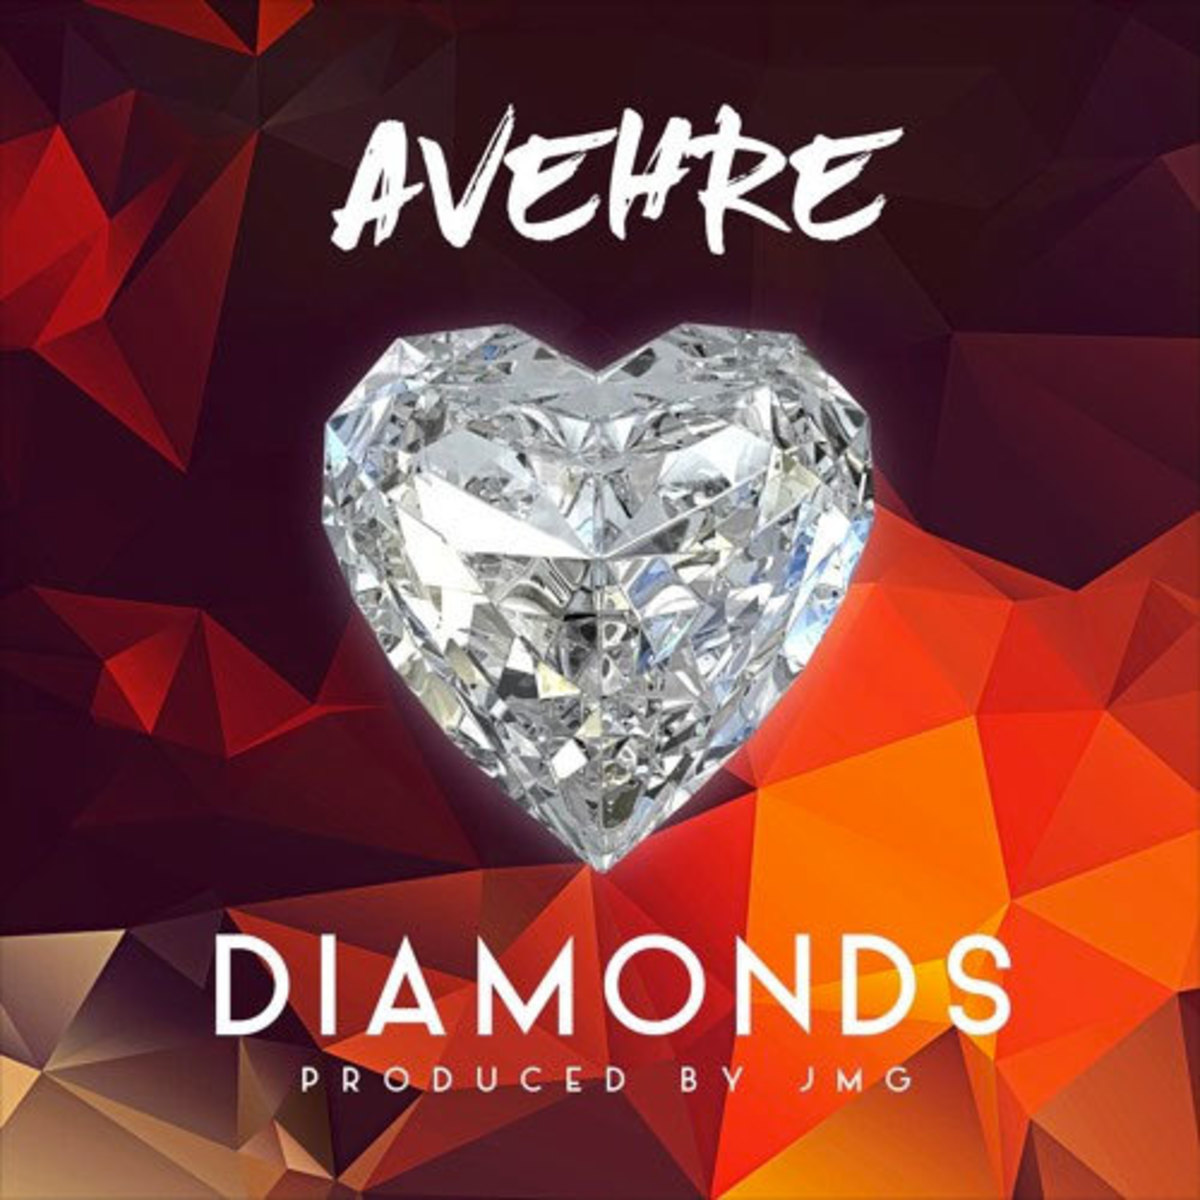 avehre-diamonds.jpg